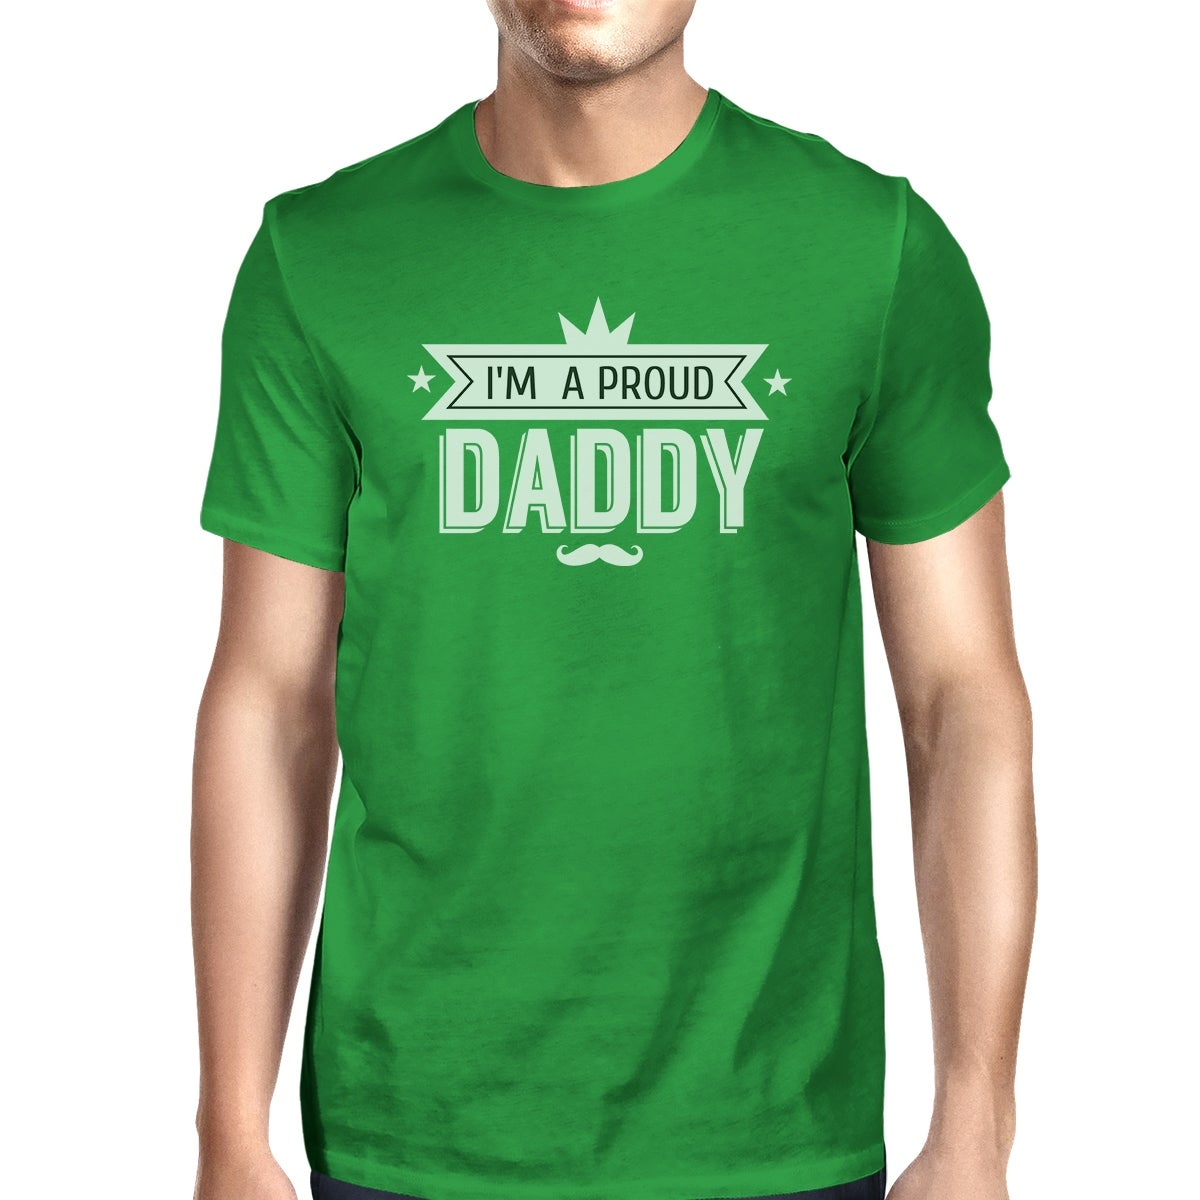 e4da7a4d Im A Proud Daddy Mens Green T-Shirt Unique Dad Gifts From Daughters